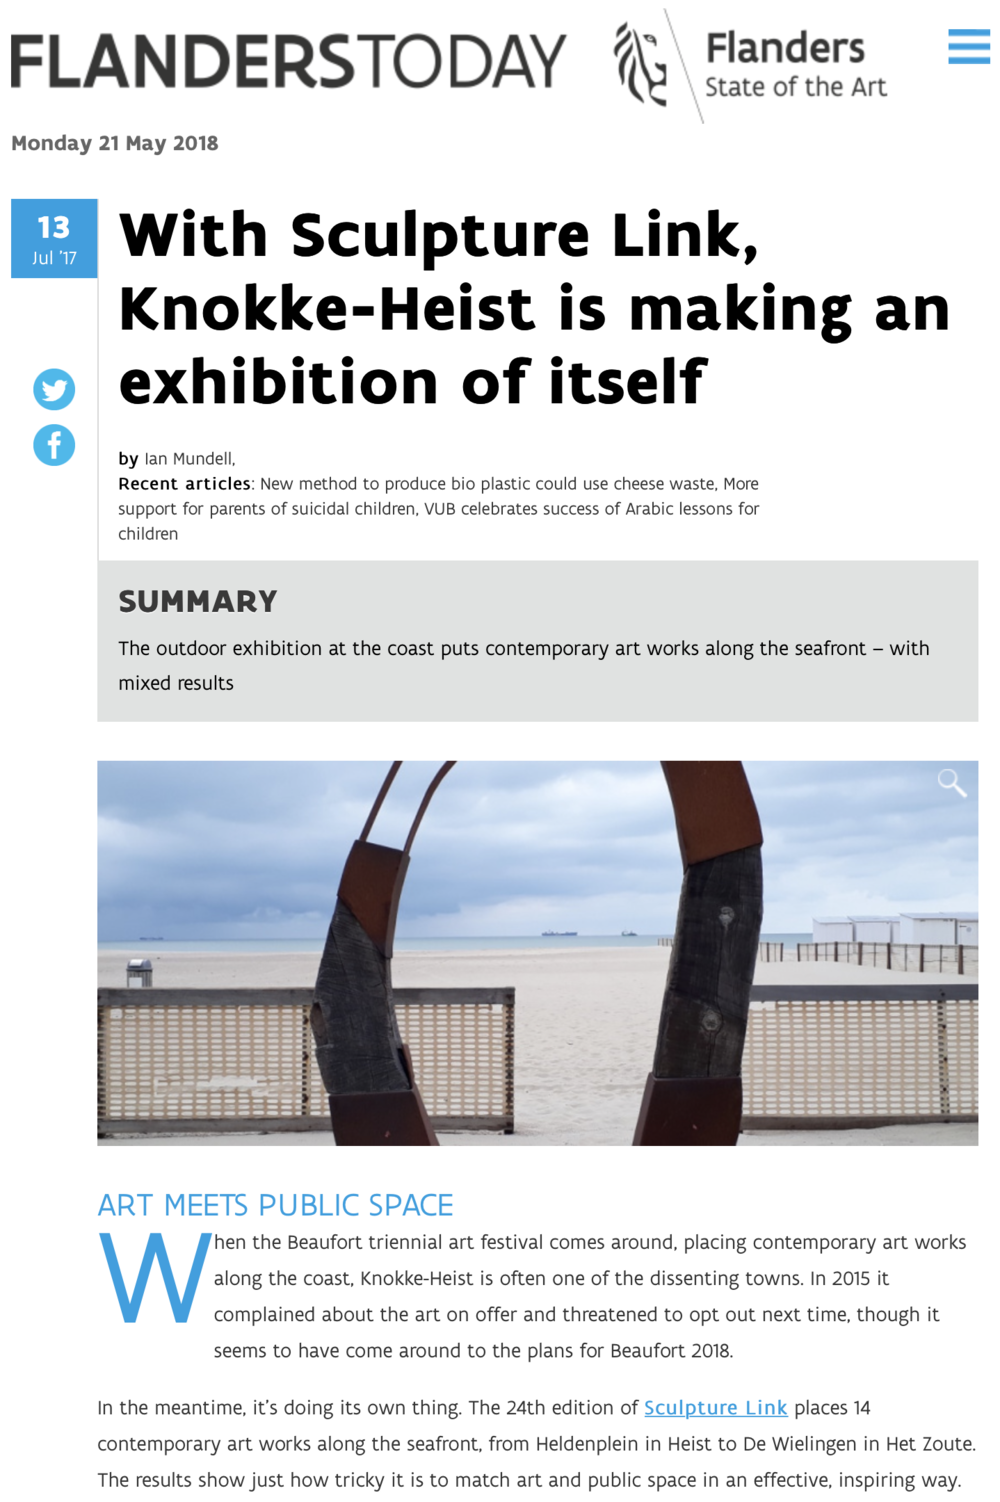 With Sculpture Link, Knokke-Heist is Making an Exhibition of Itself